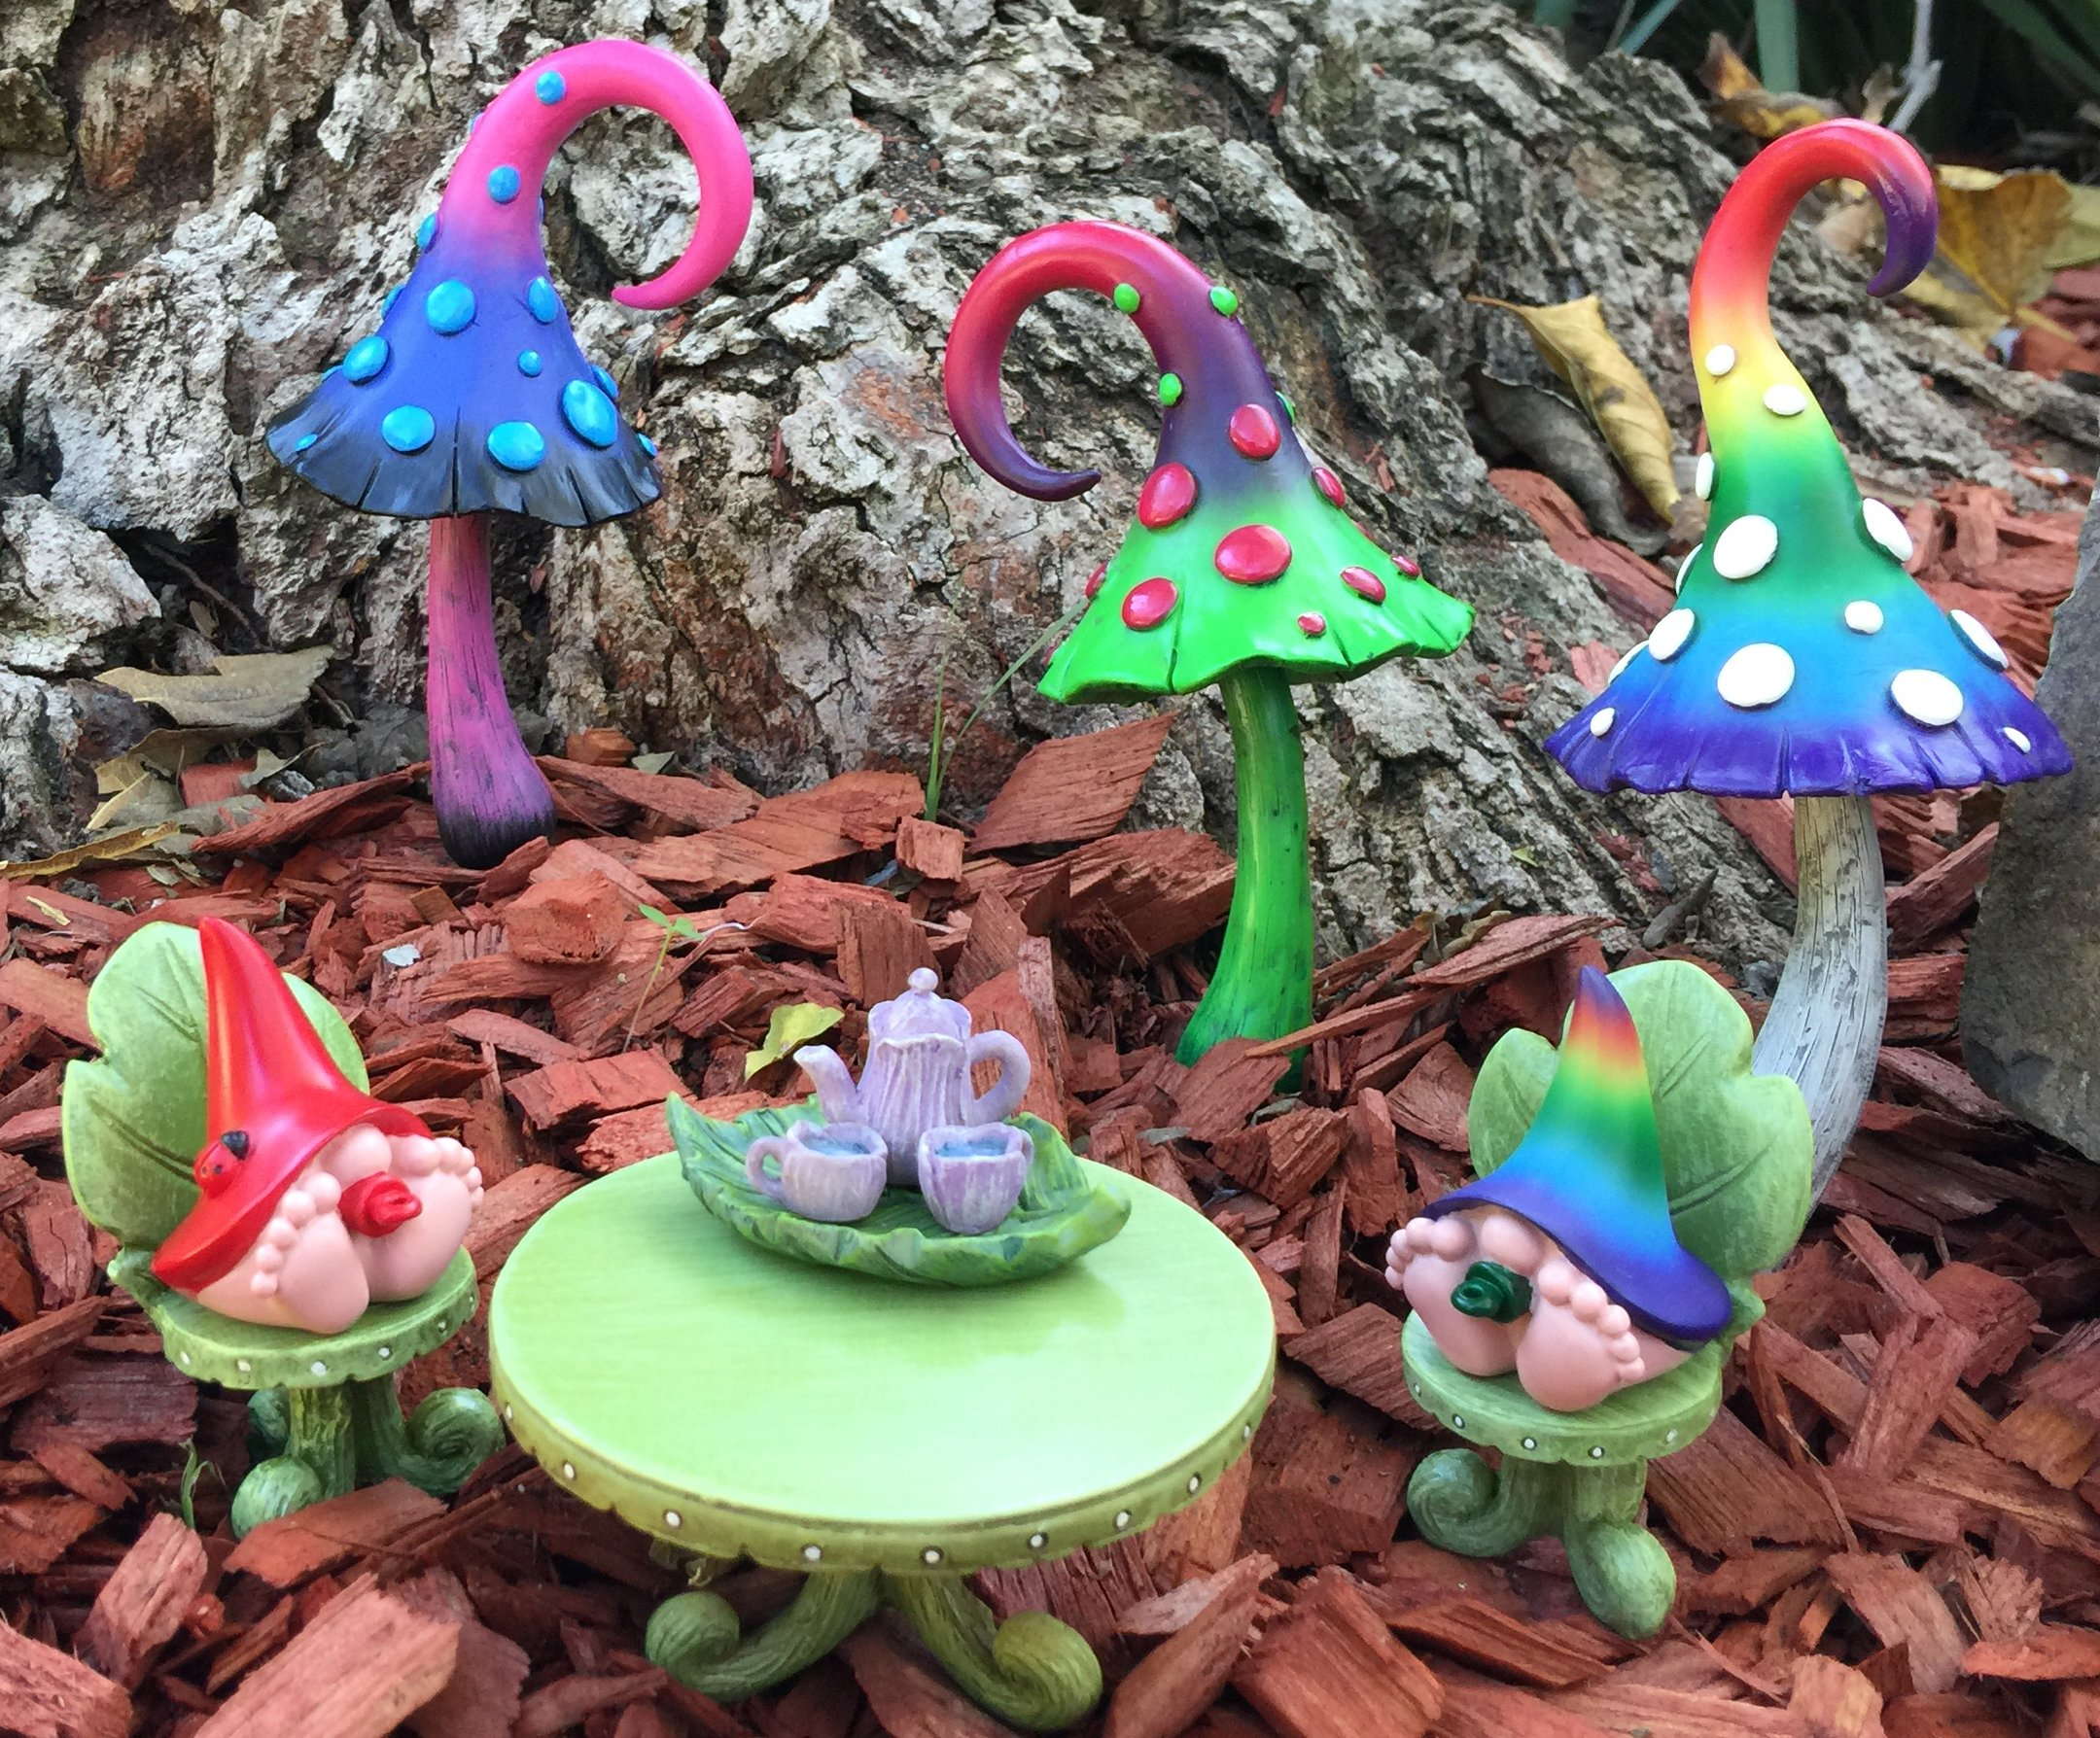 GlitZGlam Miniature Baby Gnomes 4 Pack Collection – The Baby Gnomes for The Fairy Garden That Garden Fairies Love by GlitZGlam (Image #4)